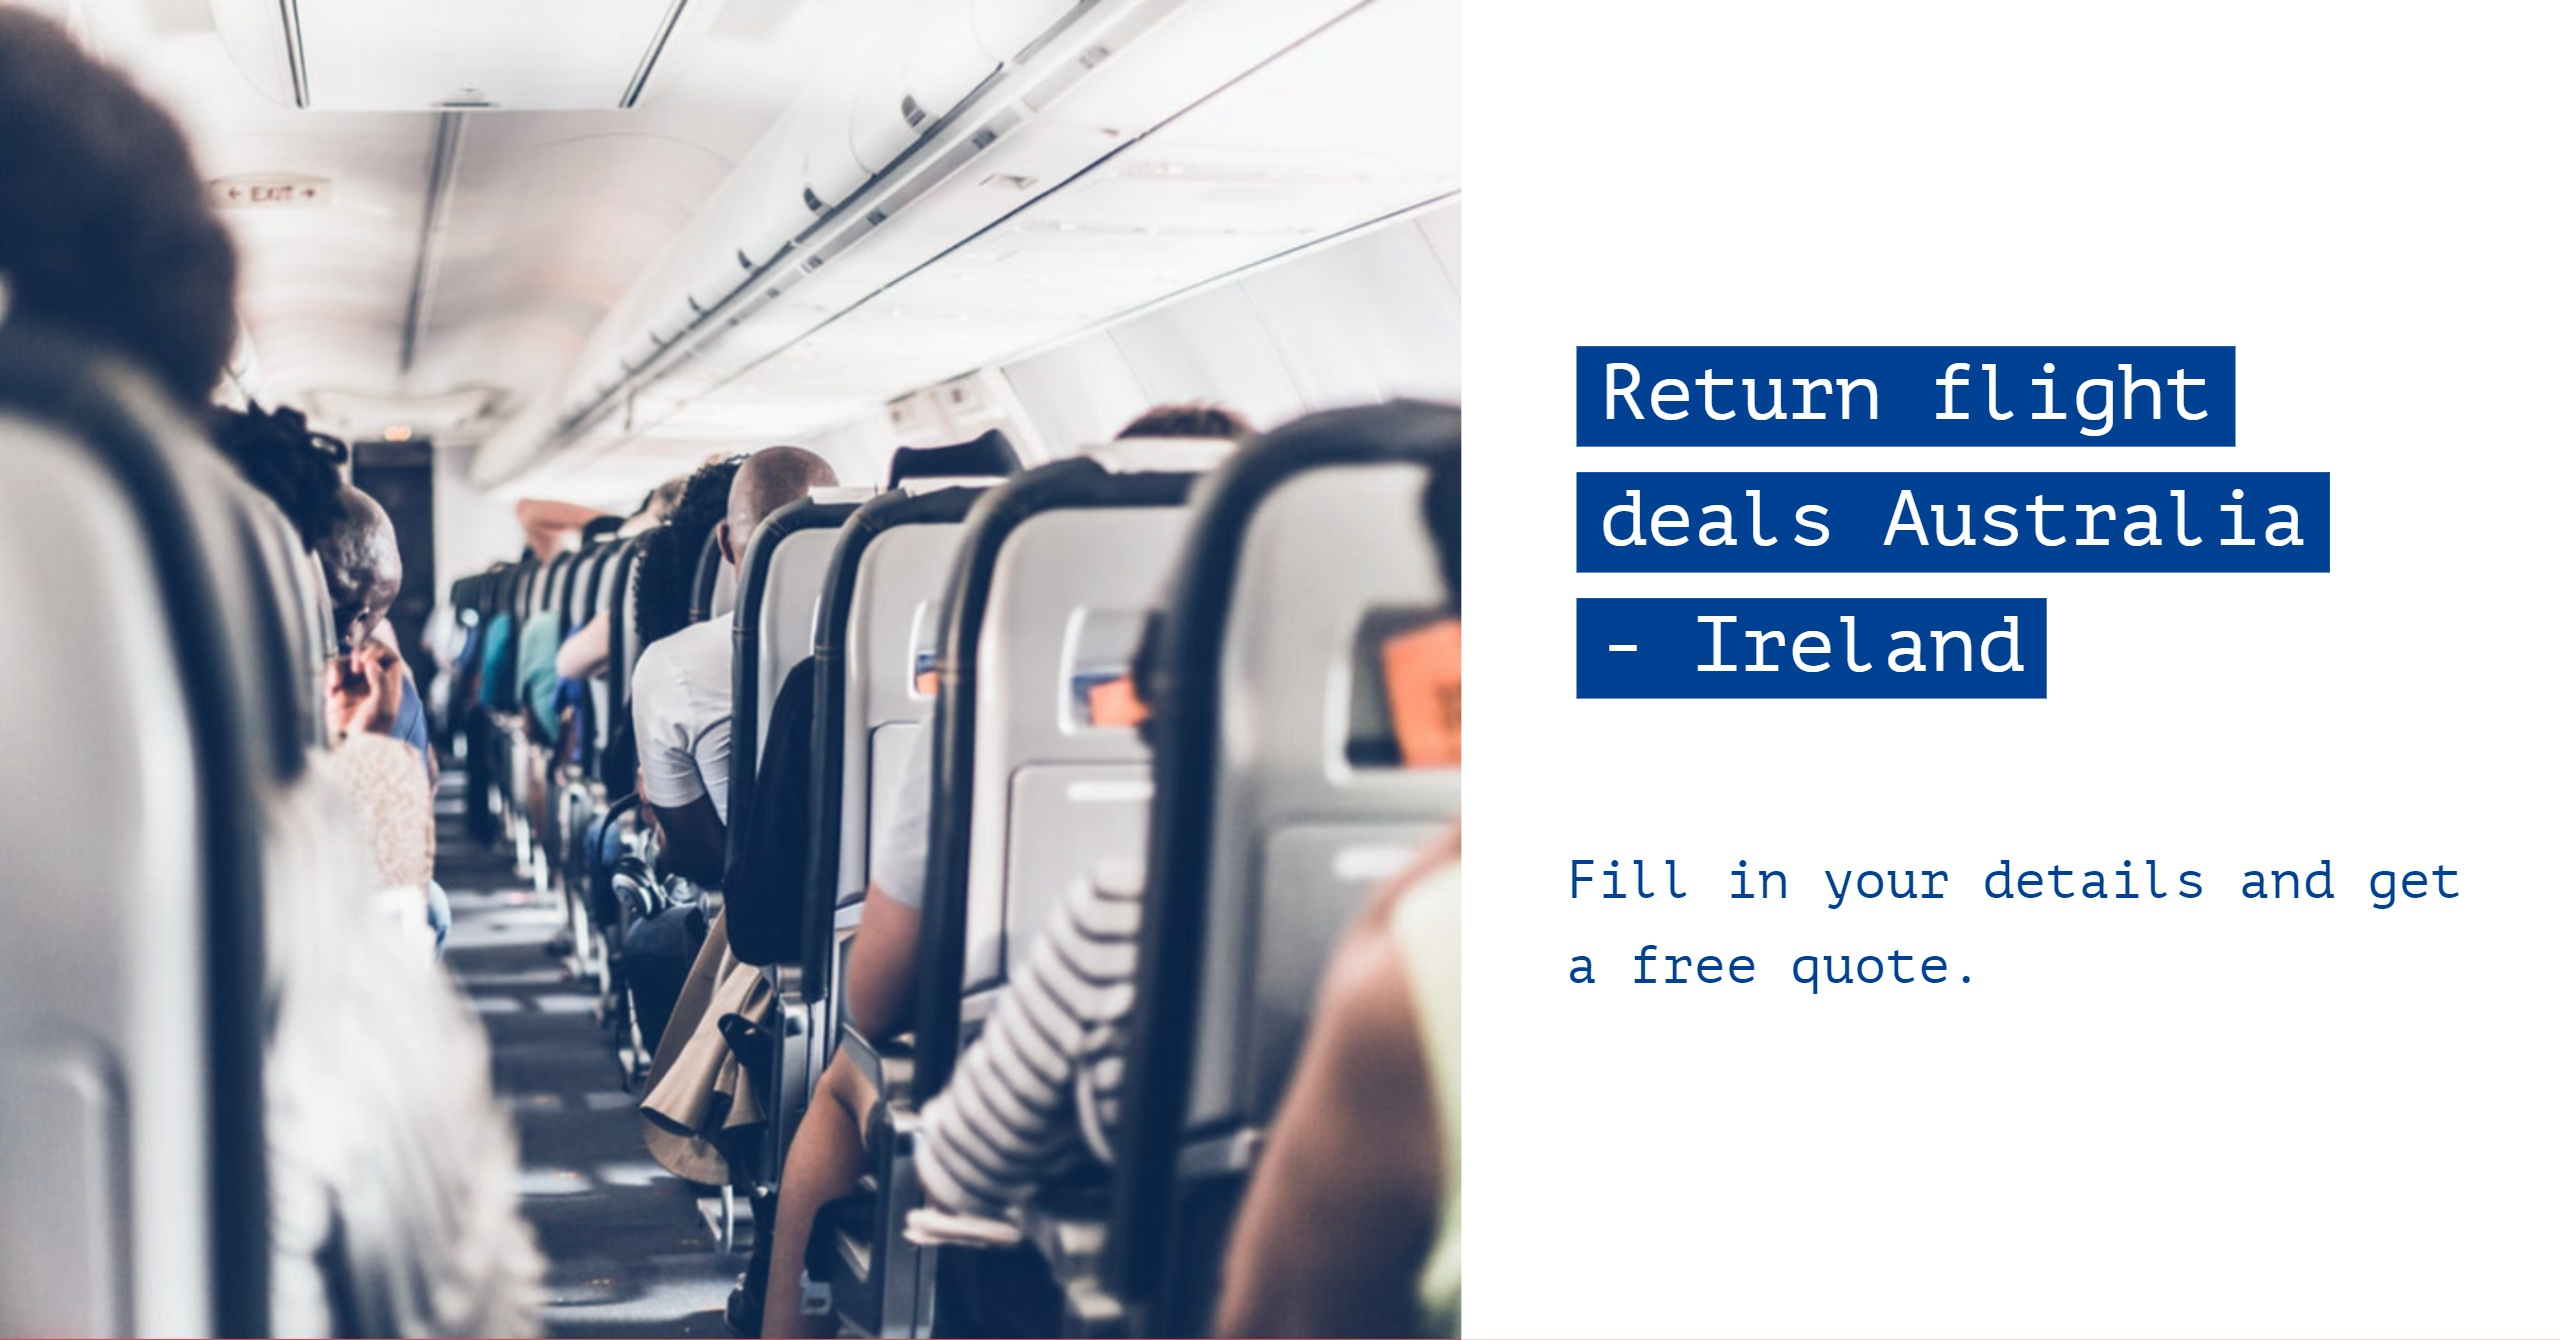 Click here to get a quote for cheap flights from Australia to Ireland